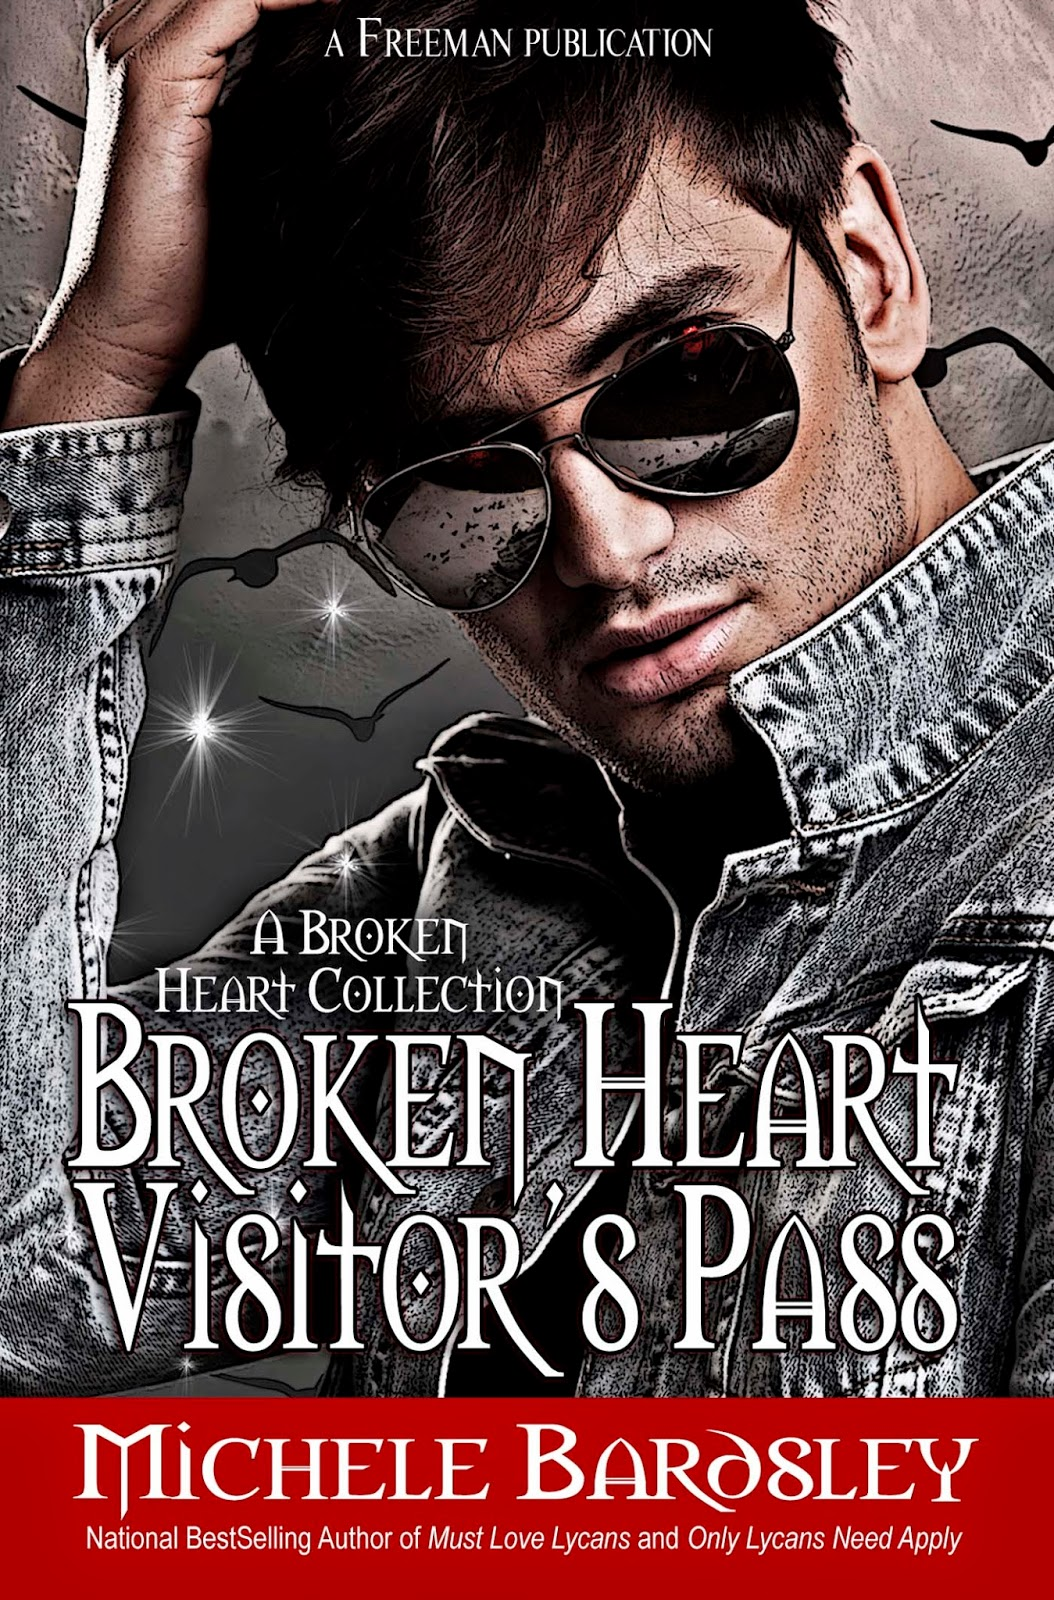 Broken Heart: Visitor's Pass is a bundled set in the Broken Heart series by Michele Bardsley.